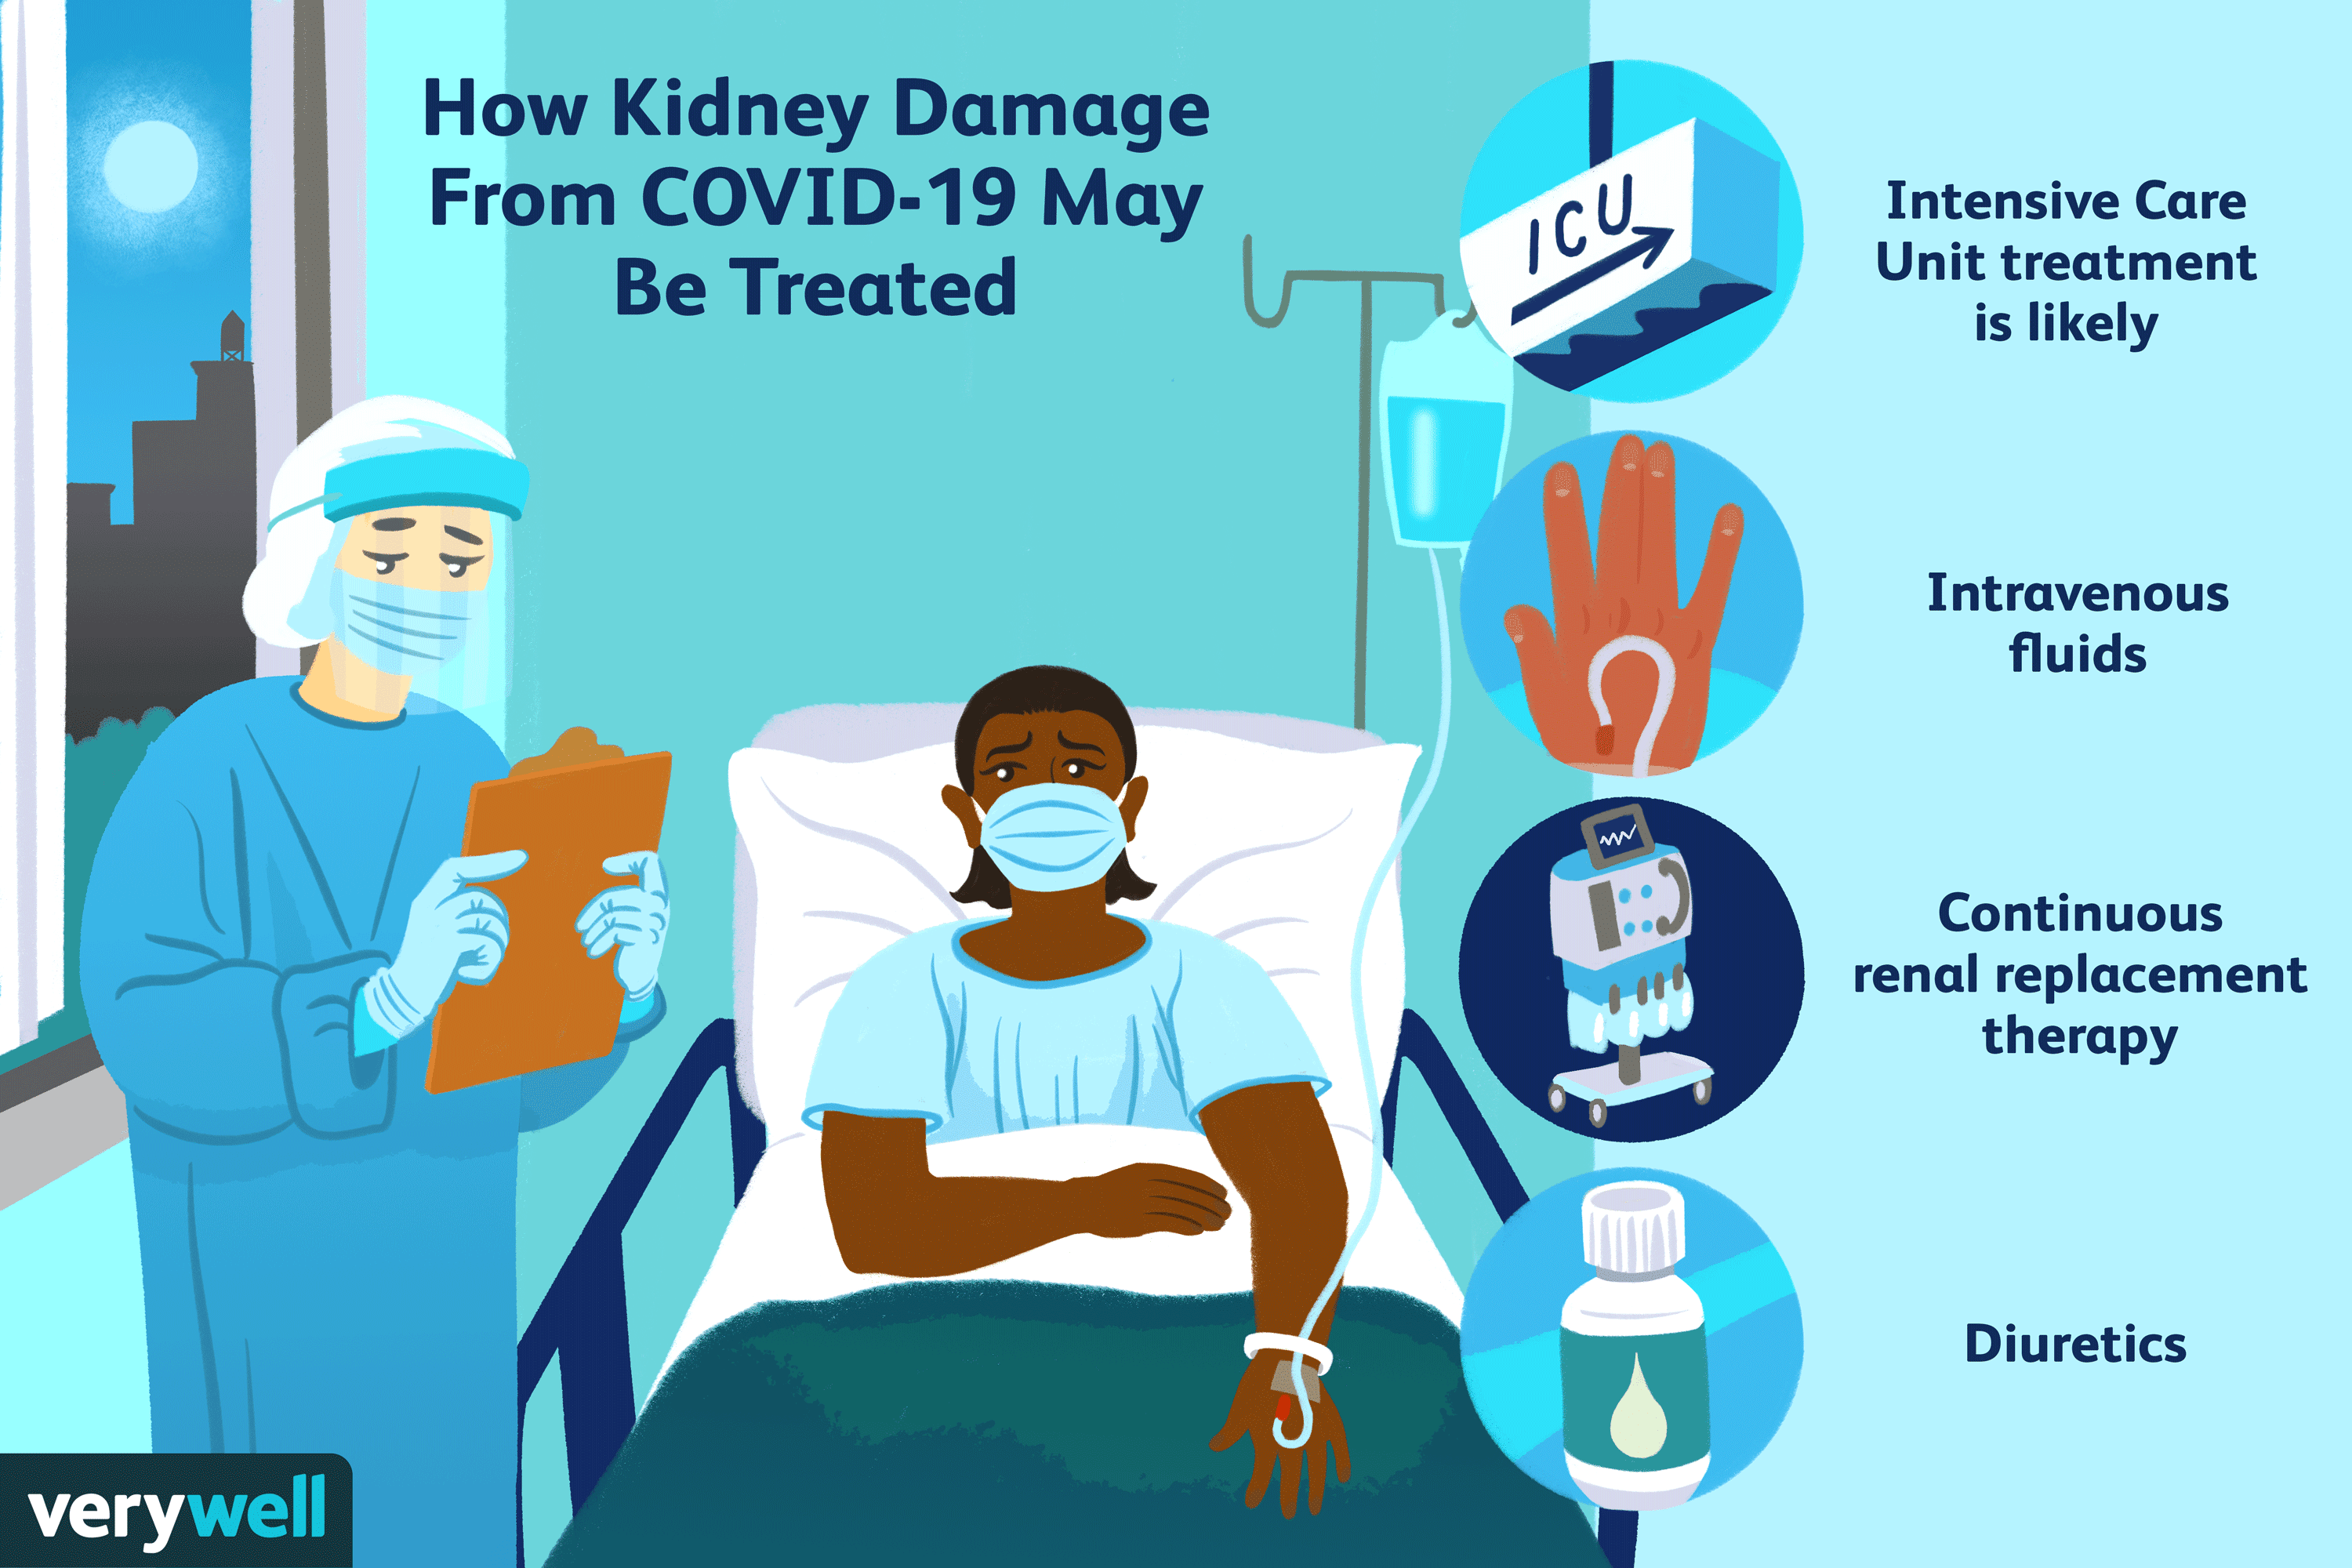 Kidney Damage With COVID-19